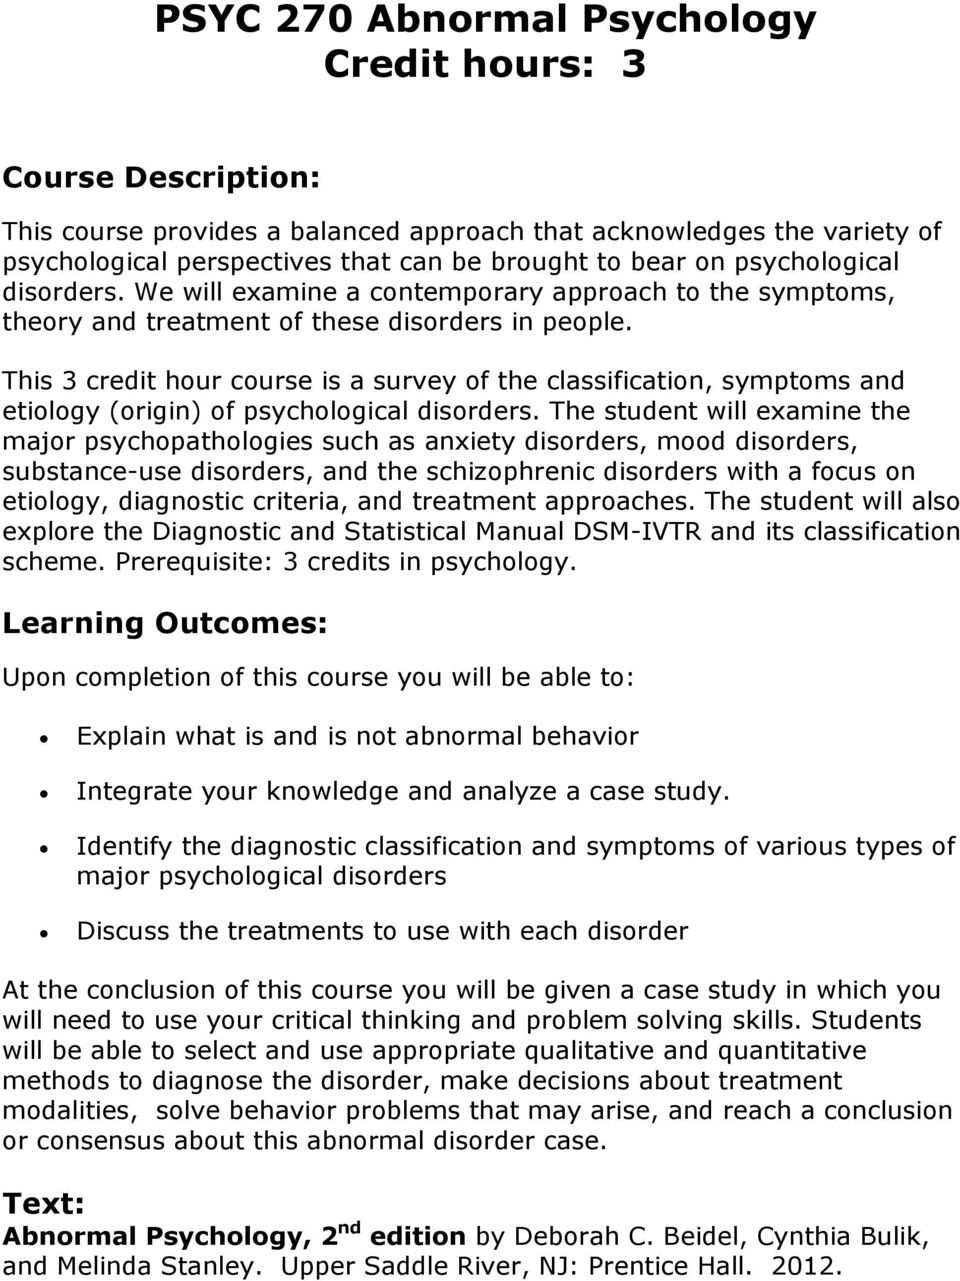 This 3 credit hour course is a survey of the classification, symptoms and etiology (origin) of psychological disorders.